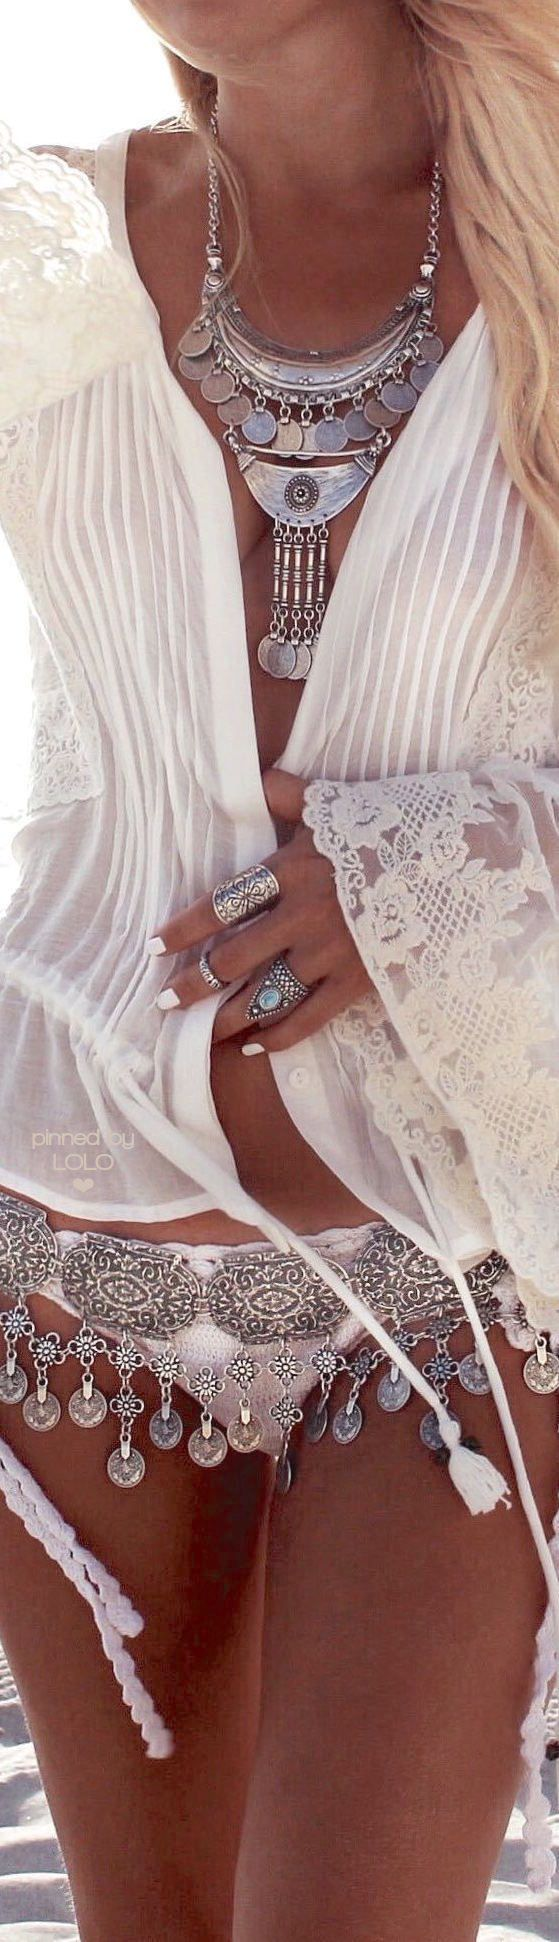 Best 25 big jewelry ideas on pinterest wedding day for Walk in closet abbreviation